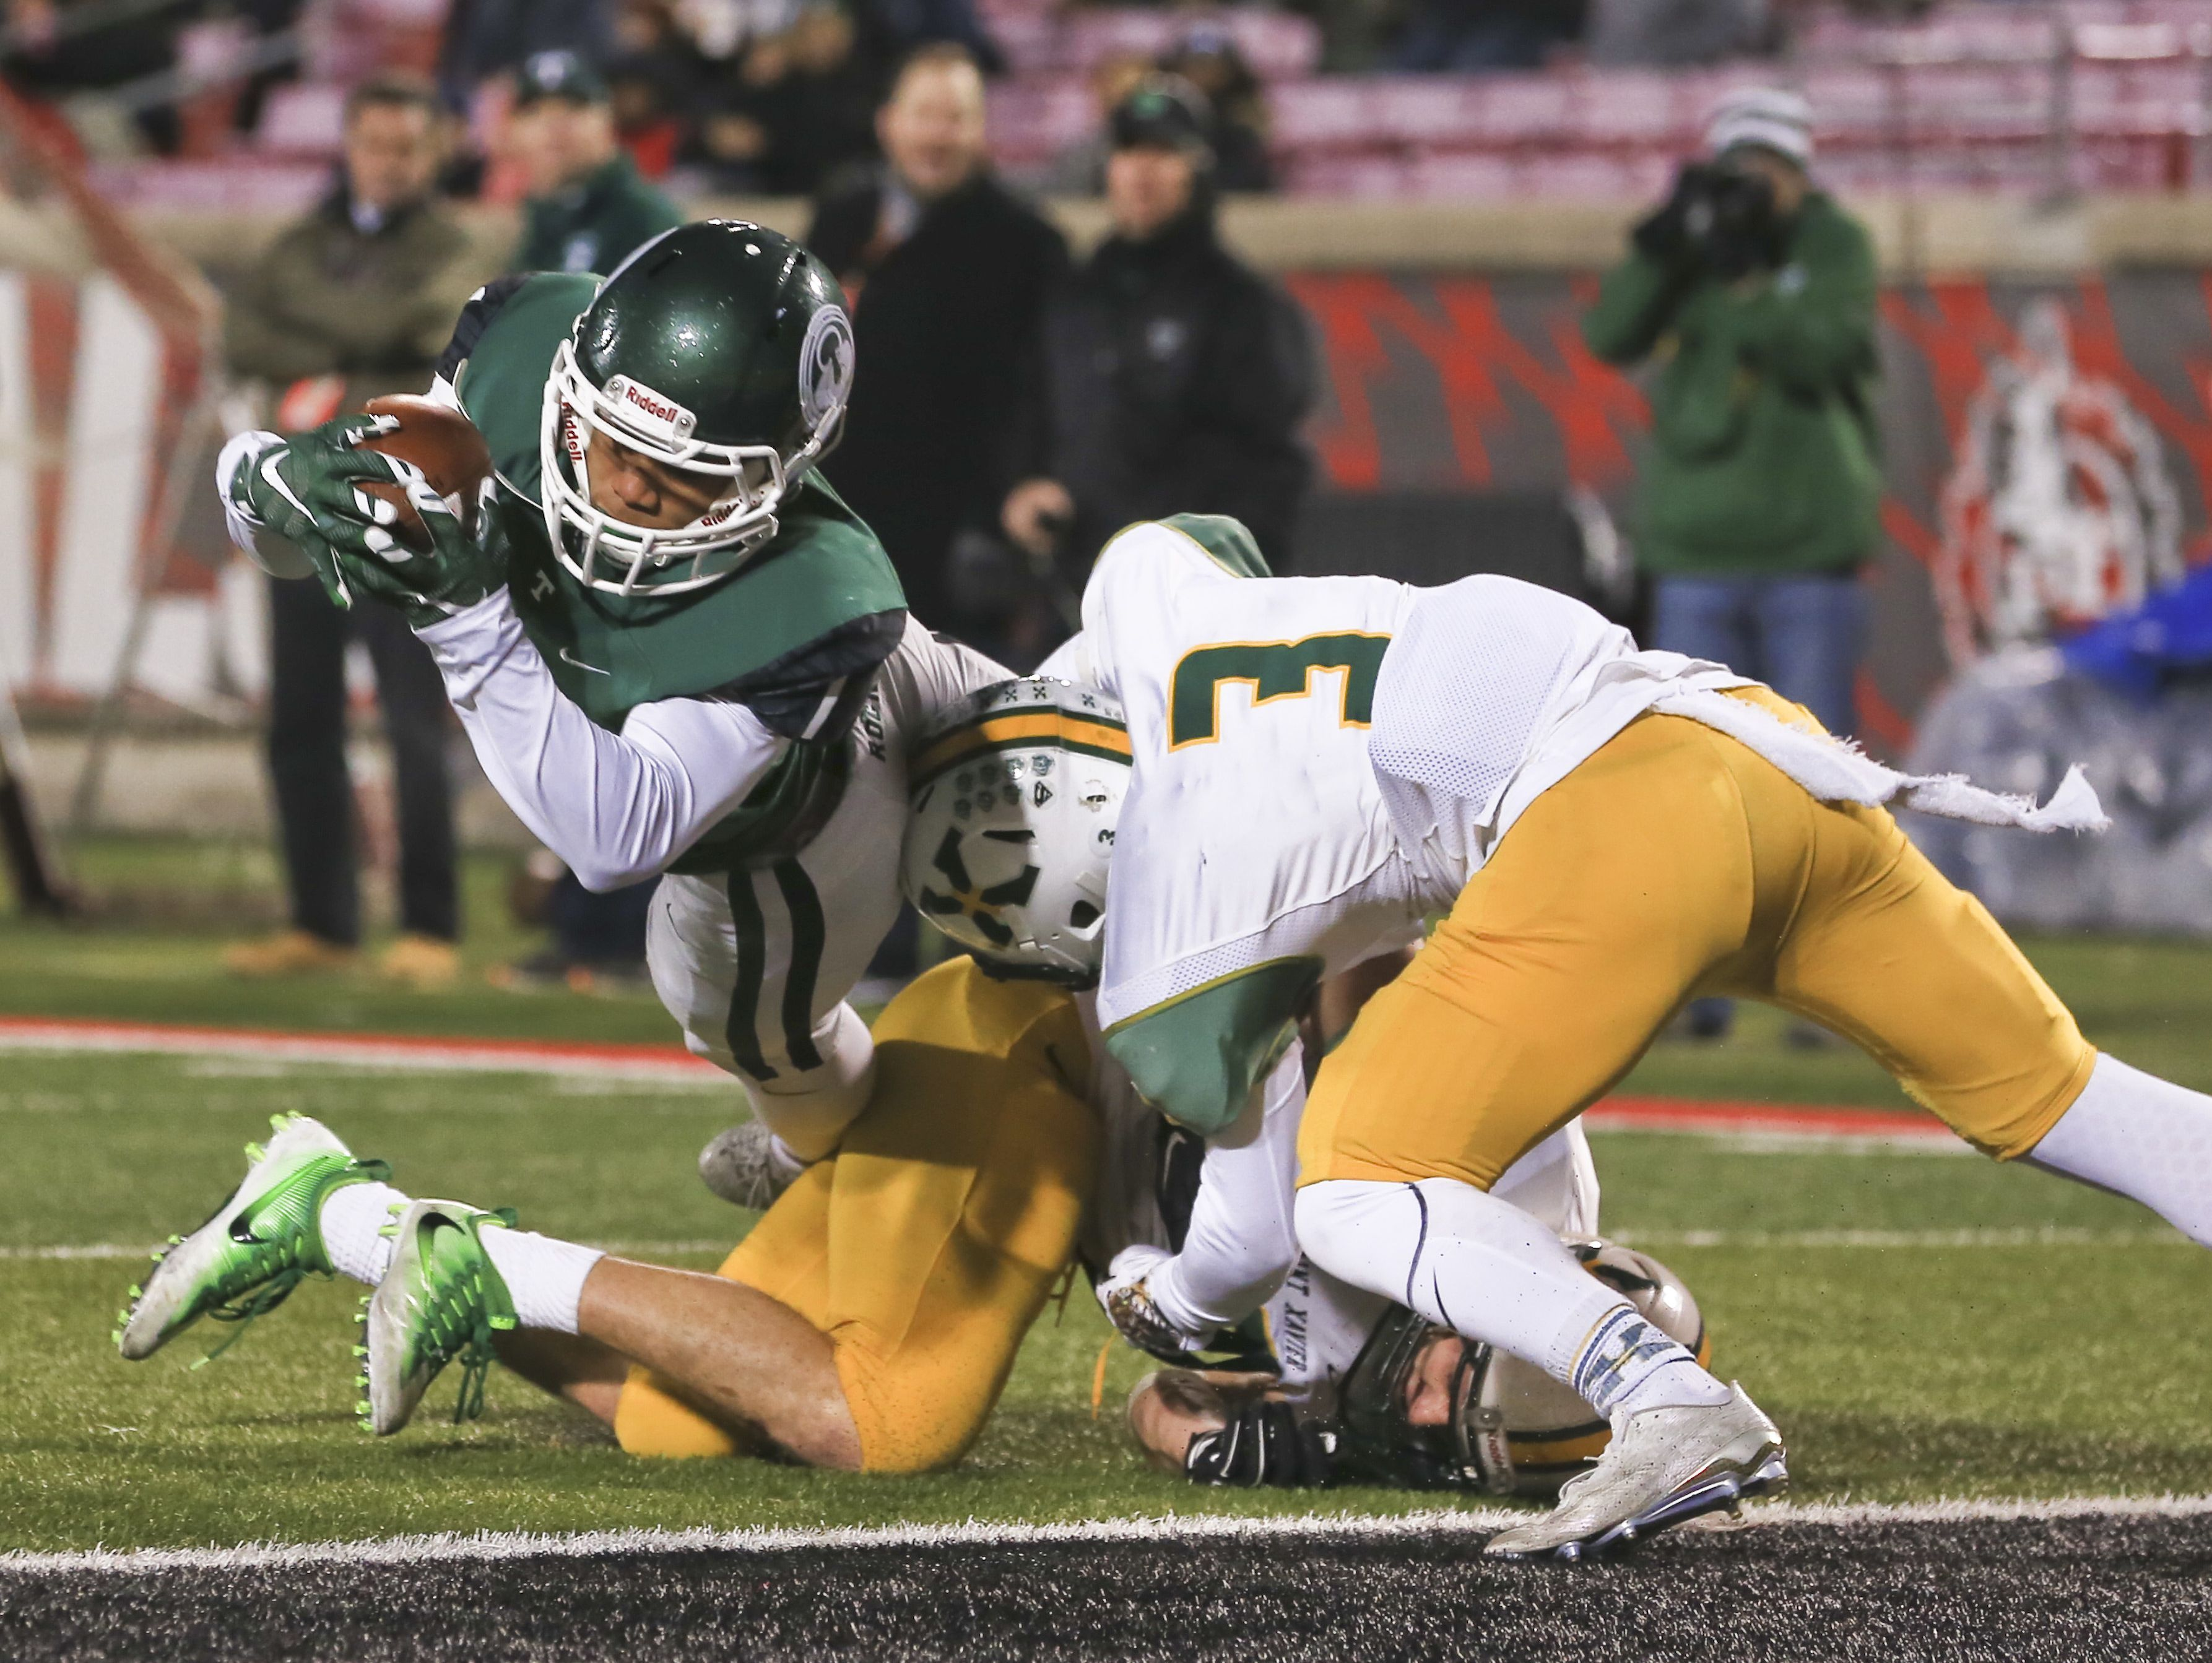 Trinity's Rondale Moore lunges over St. X's Jake Taylor (3) and Brandon Washburn to give the Rocks another touchdown in the third quarter as Trinity beat St. X 24-14 in the semi-state game Friday night at Papa John's Cardinal Stadium.